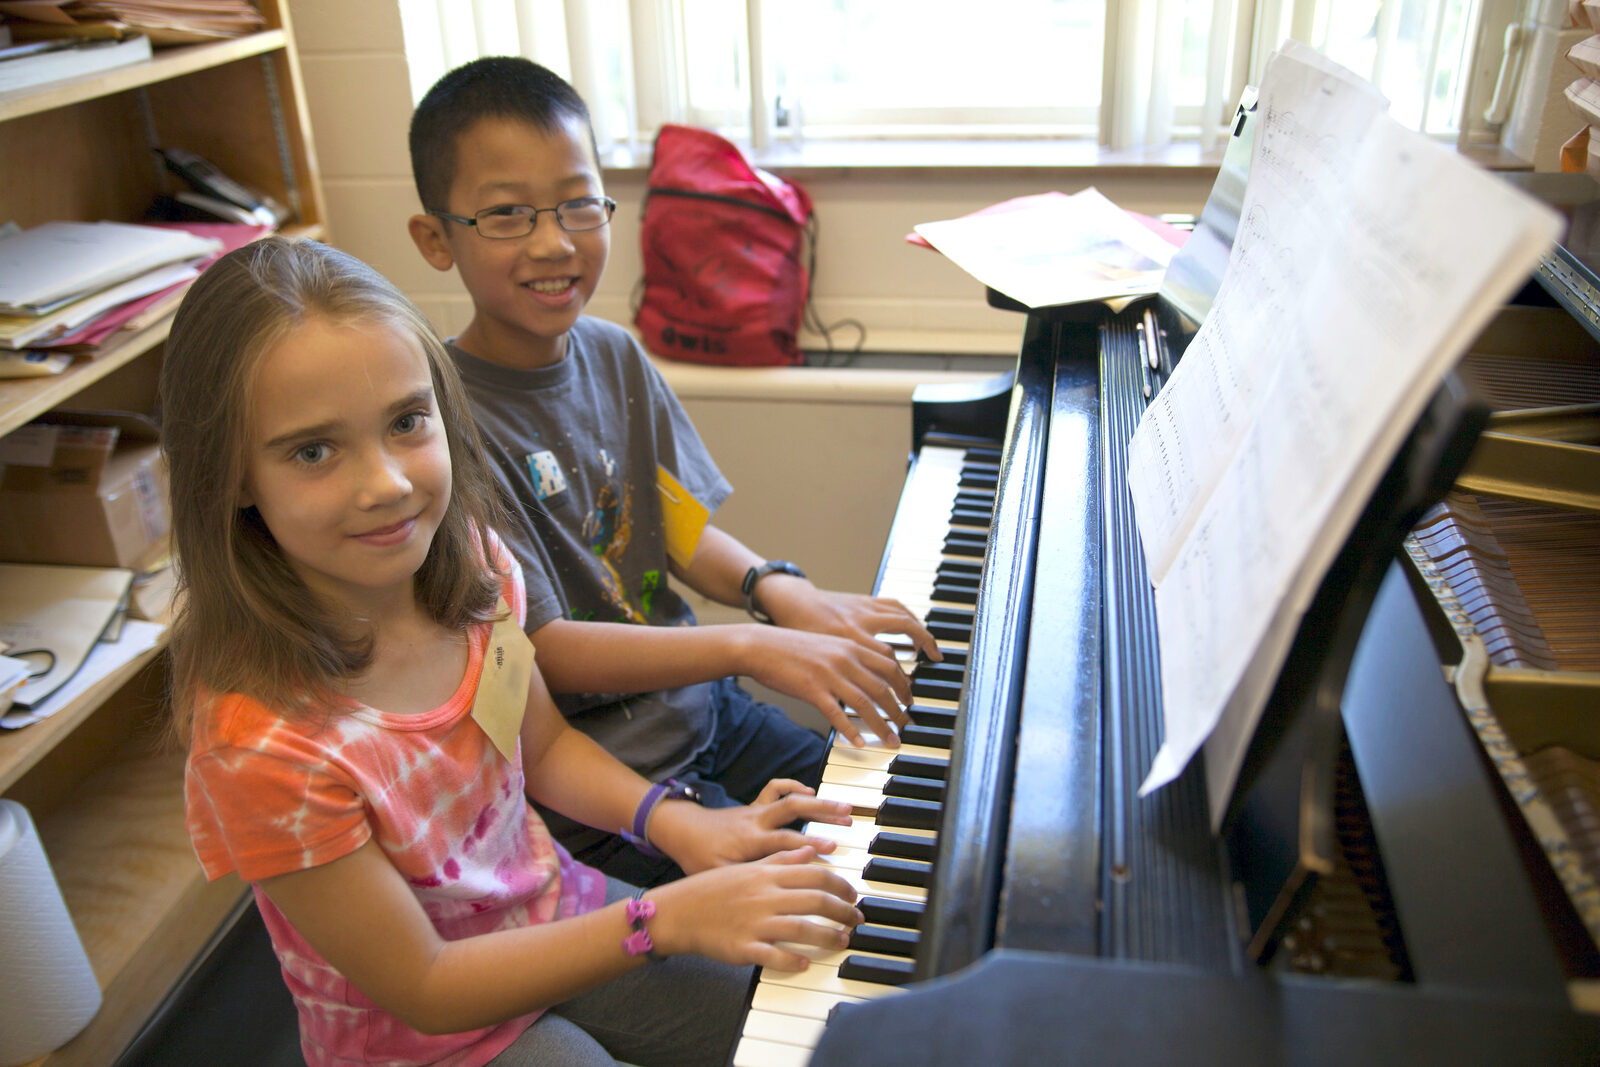 A young boy and girl sit at a piano in a studio. Both have their hands on the keys and smile at the camera.